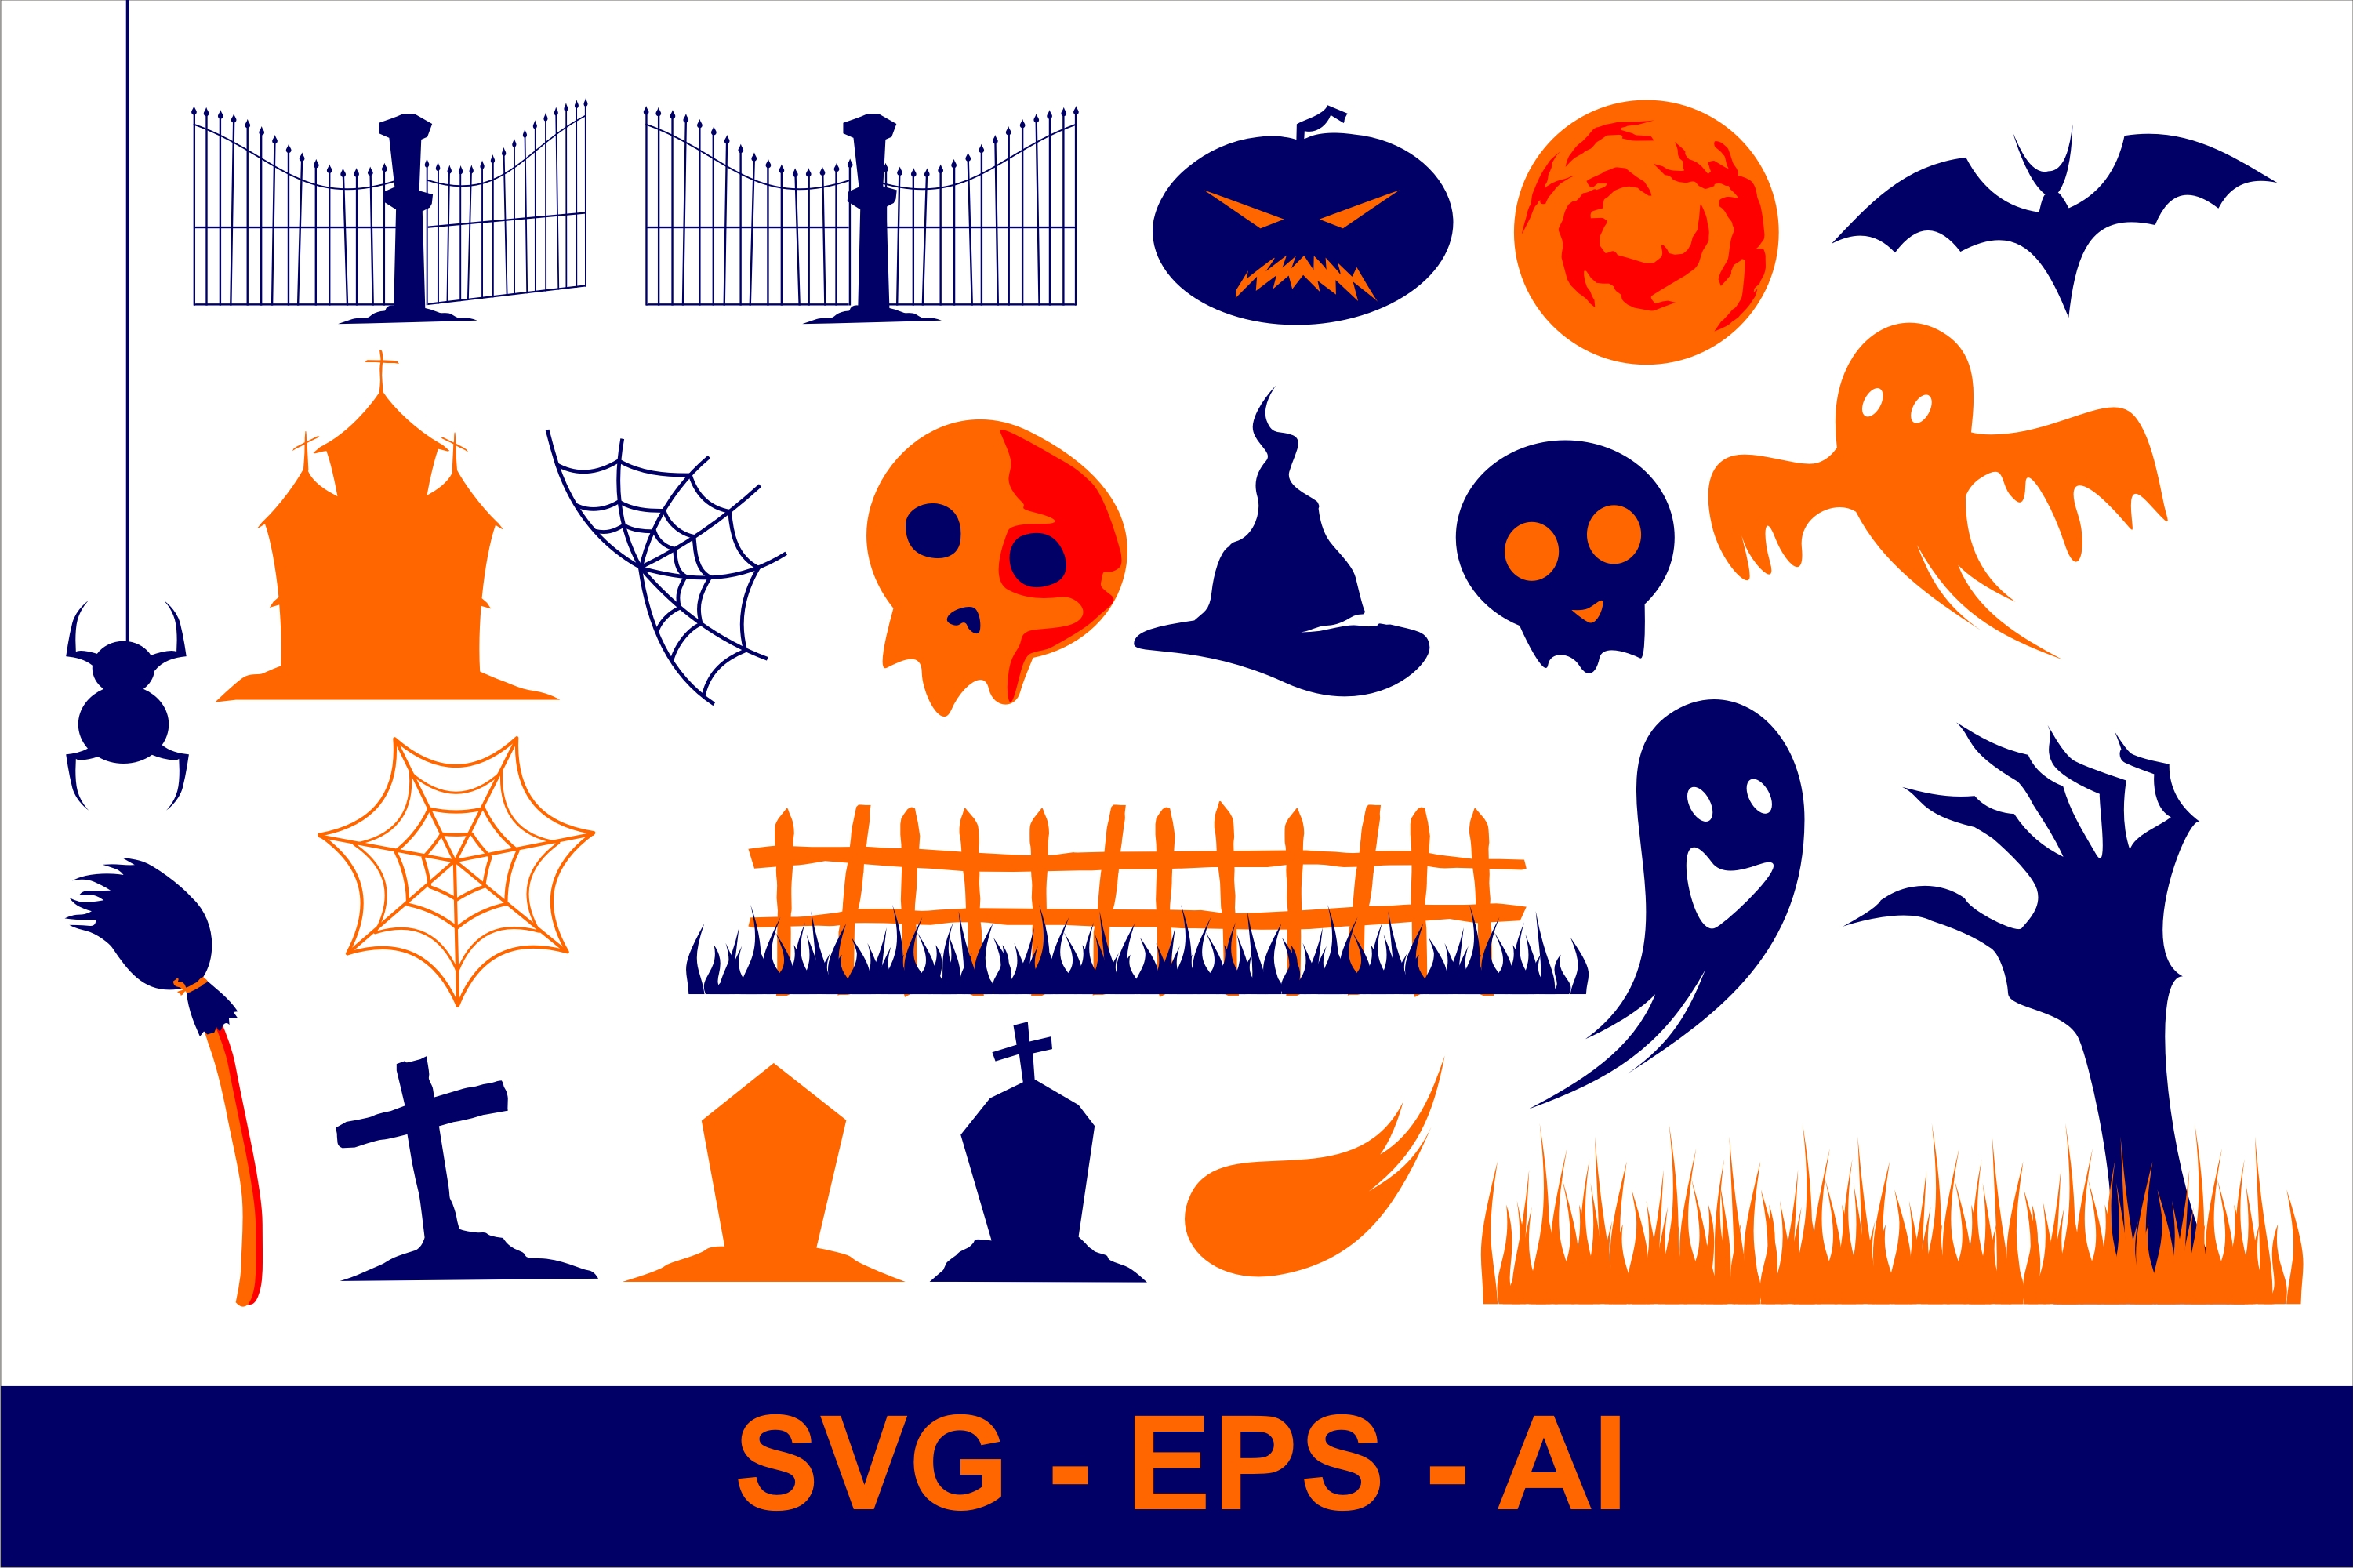 Svg Halloween Clipart Free Svg Cut Files Create Your Diy Projects Using Your Cricut Explore Silhouette And More The Free Cut Files Include Svg Dxf Eps And Png Files